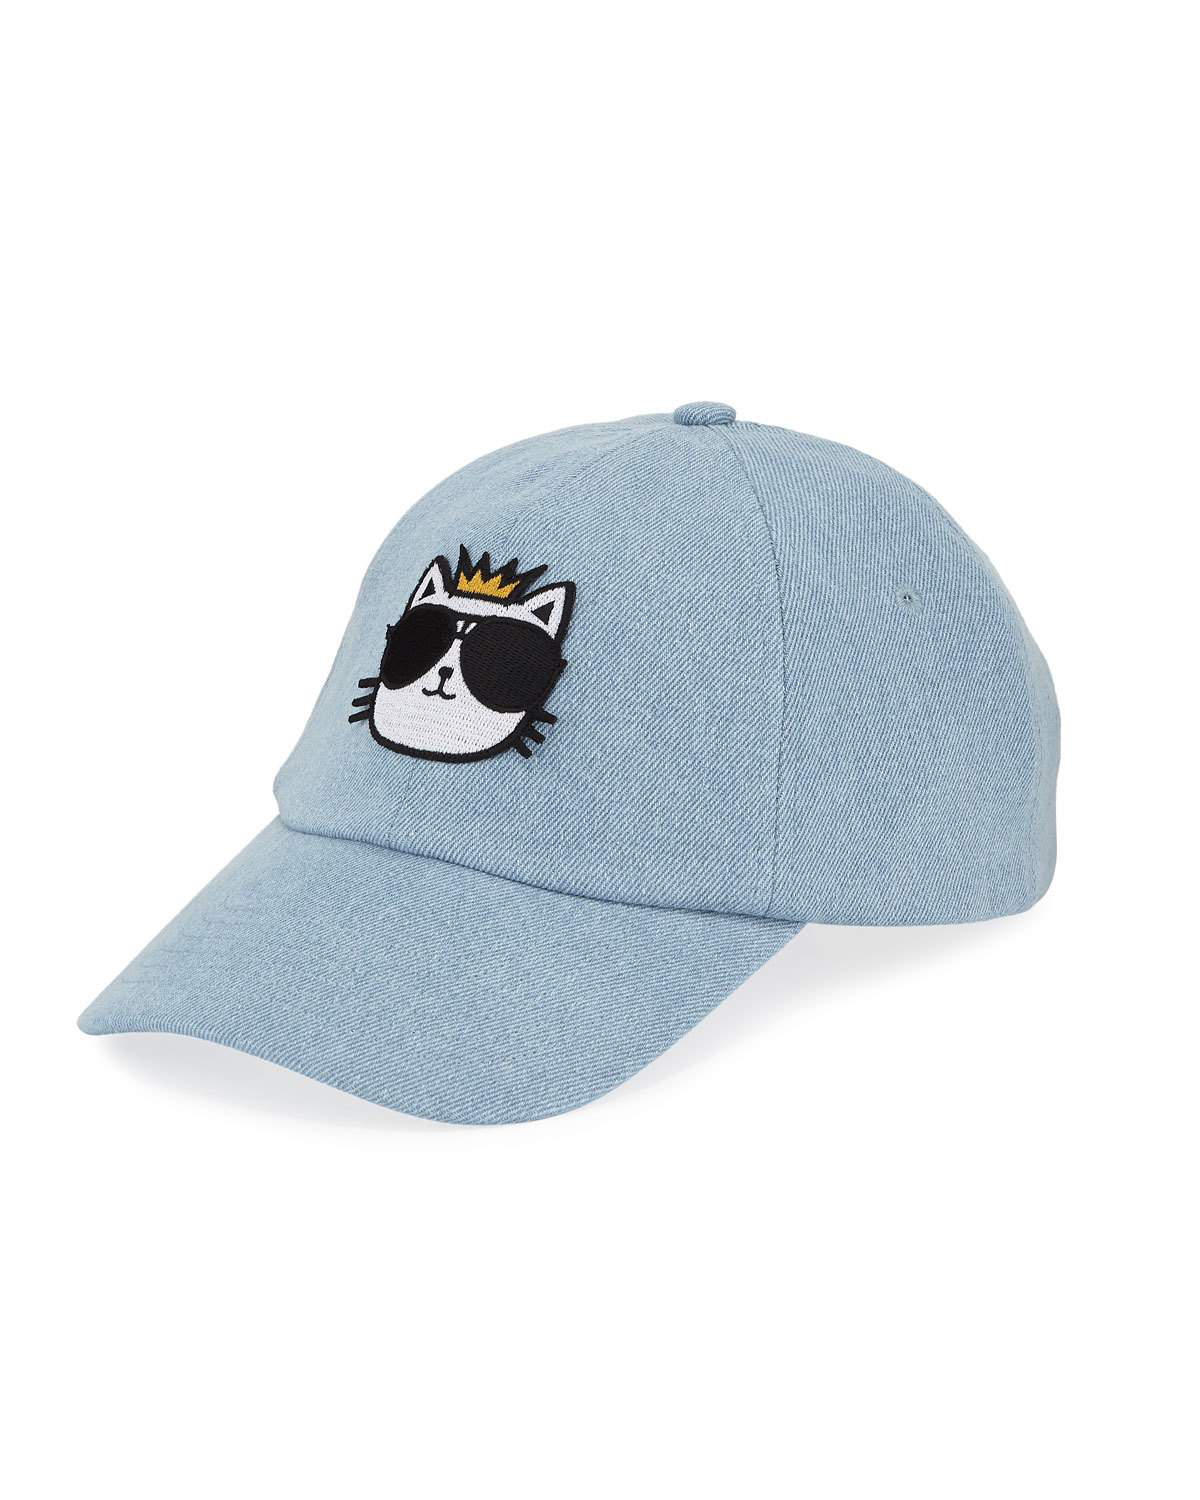 1875ec3bb9945 Karl Lagerfeld Choupette Patch Baseball Cap In Blue